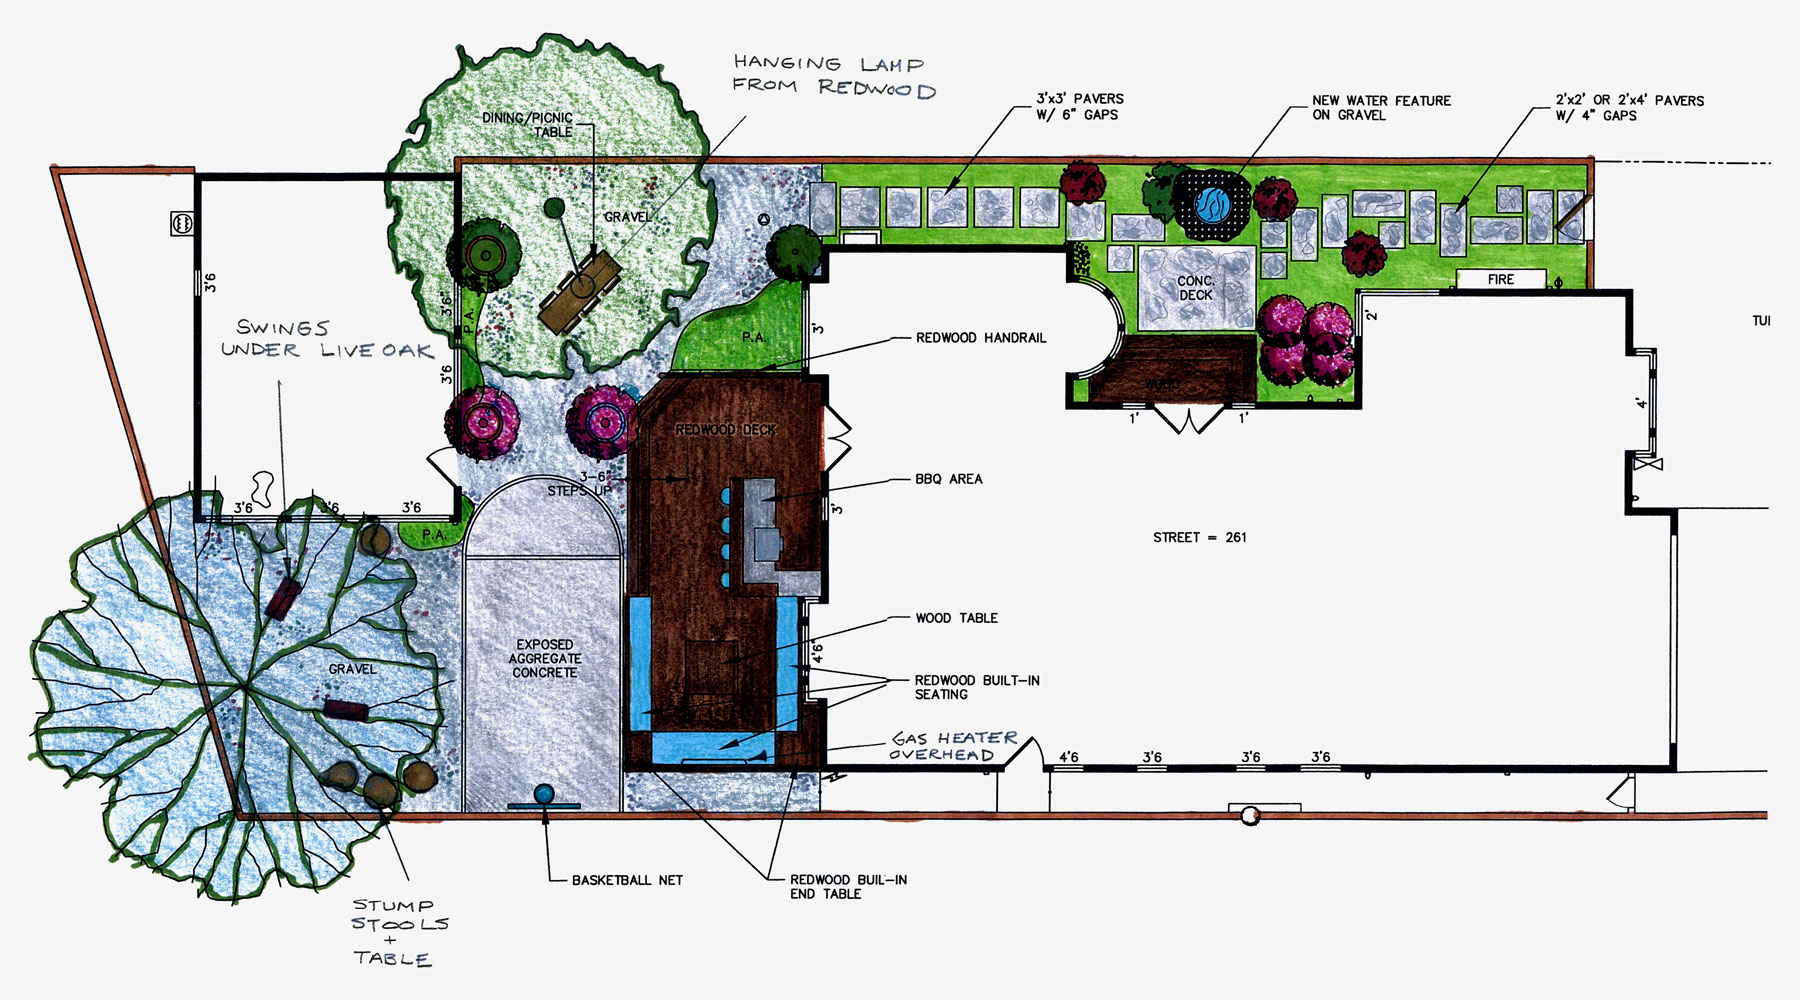 Project design sketch for Canyon Family Playground